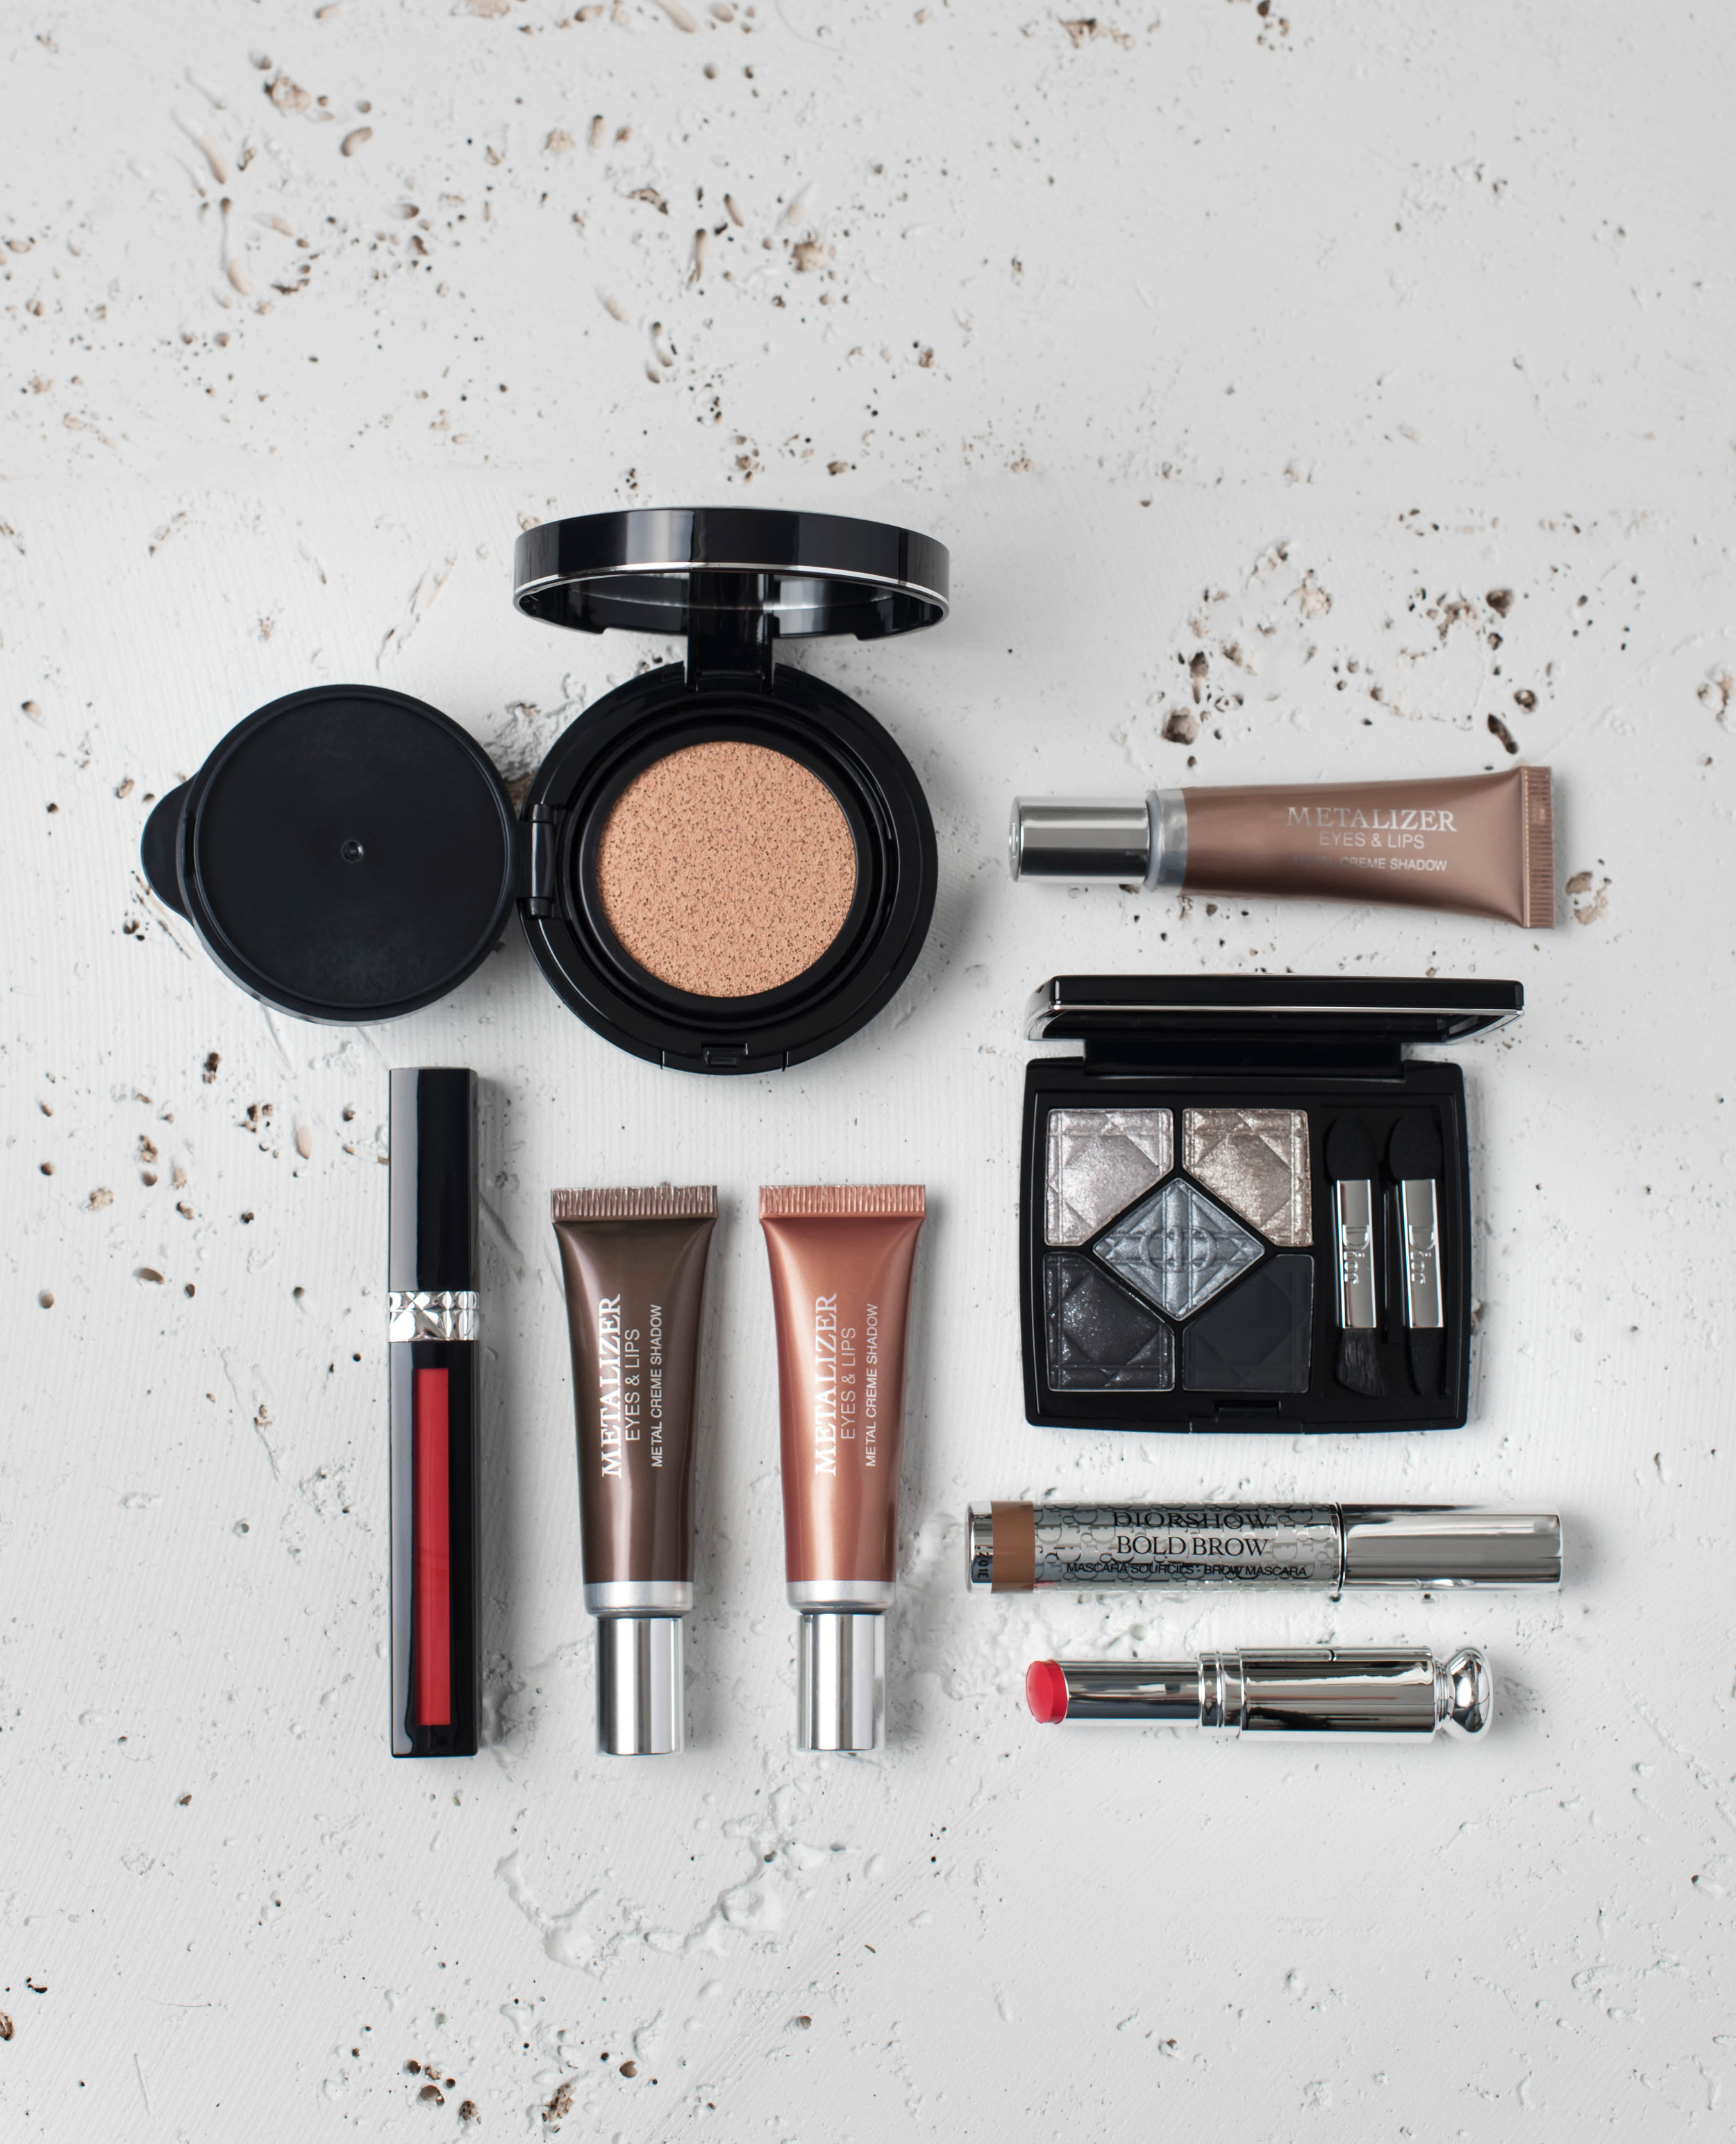 ROSE & IVY Journal Fall Beauty Dior's Metals and Defining Colors